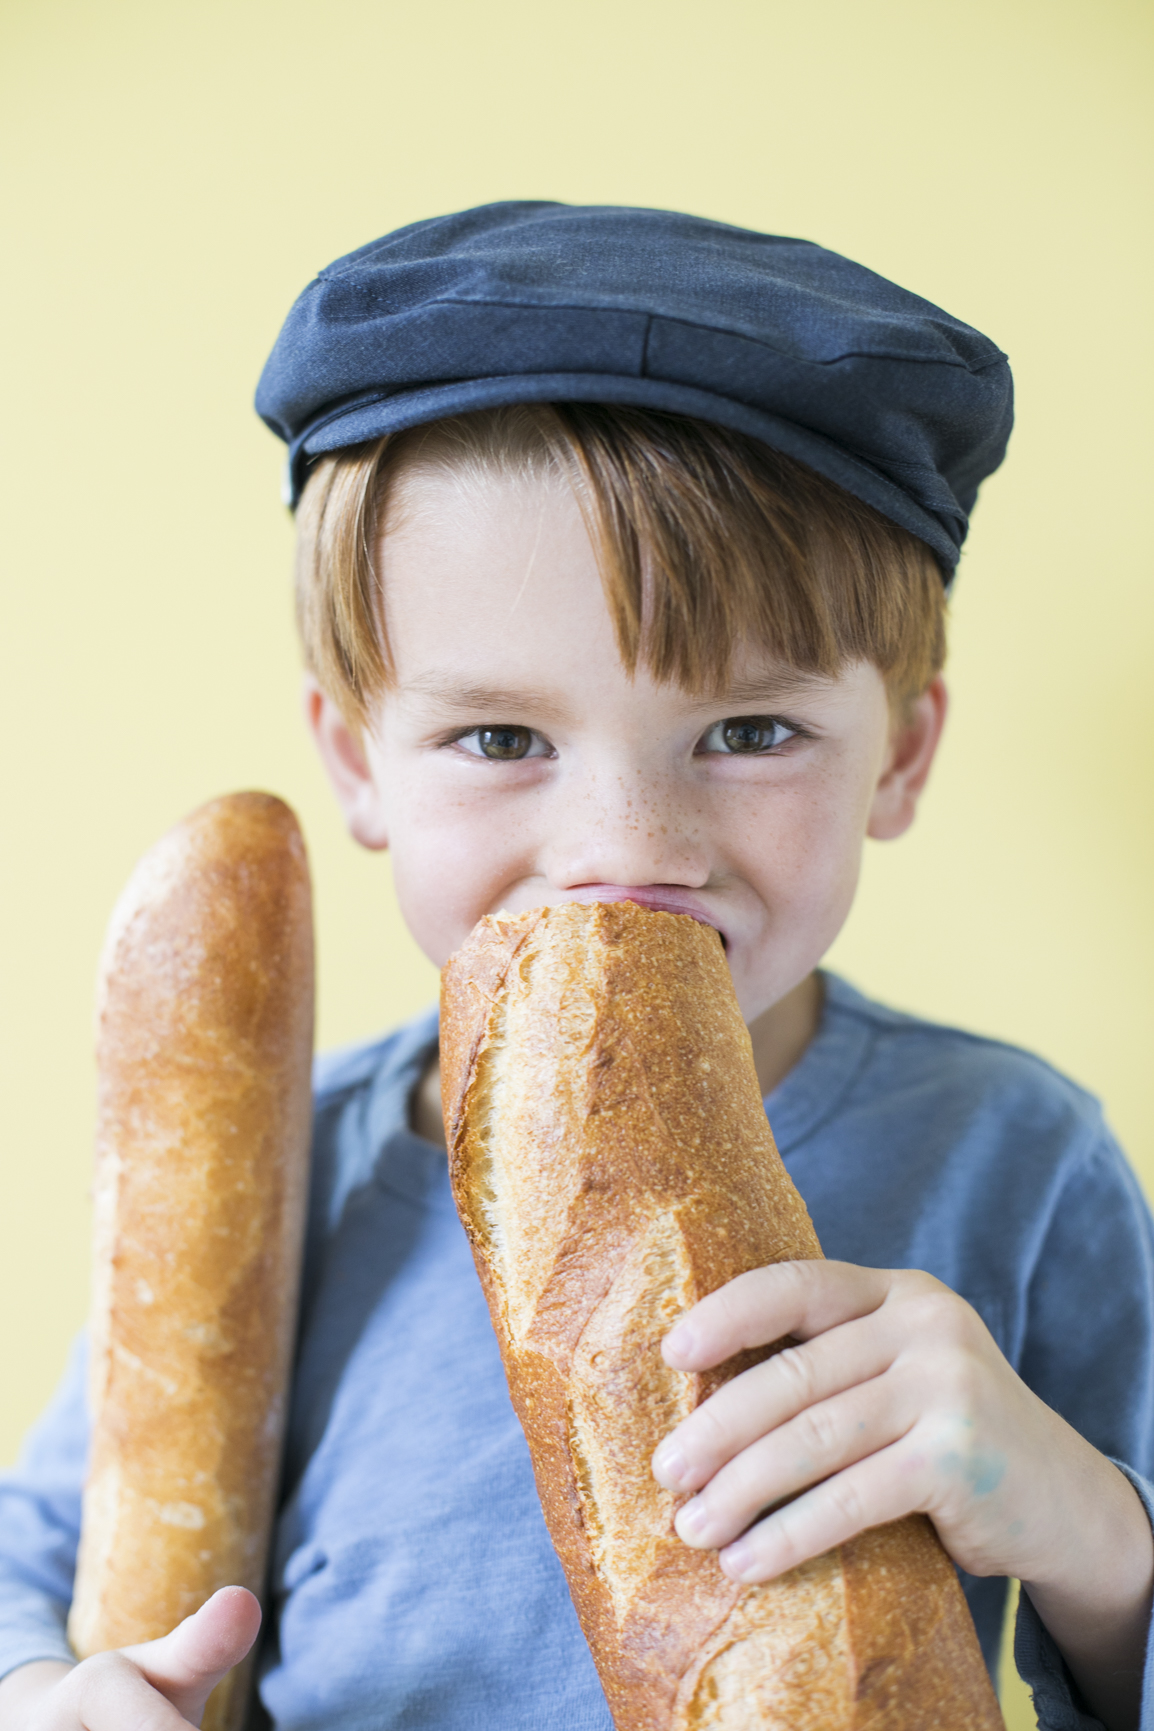 Child Eating a Baguette